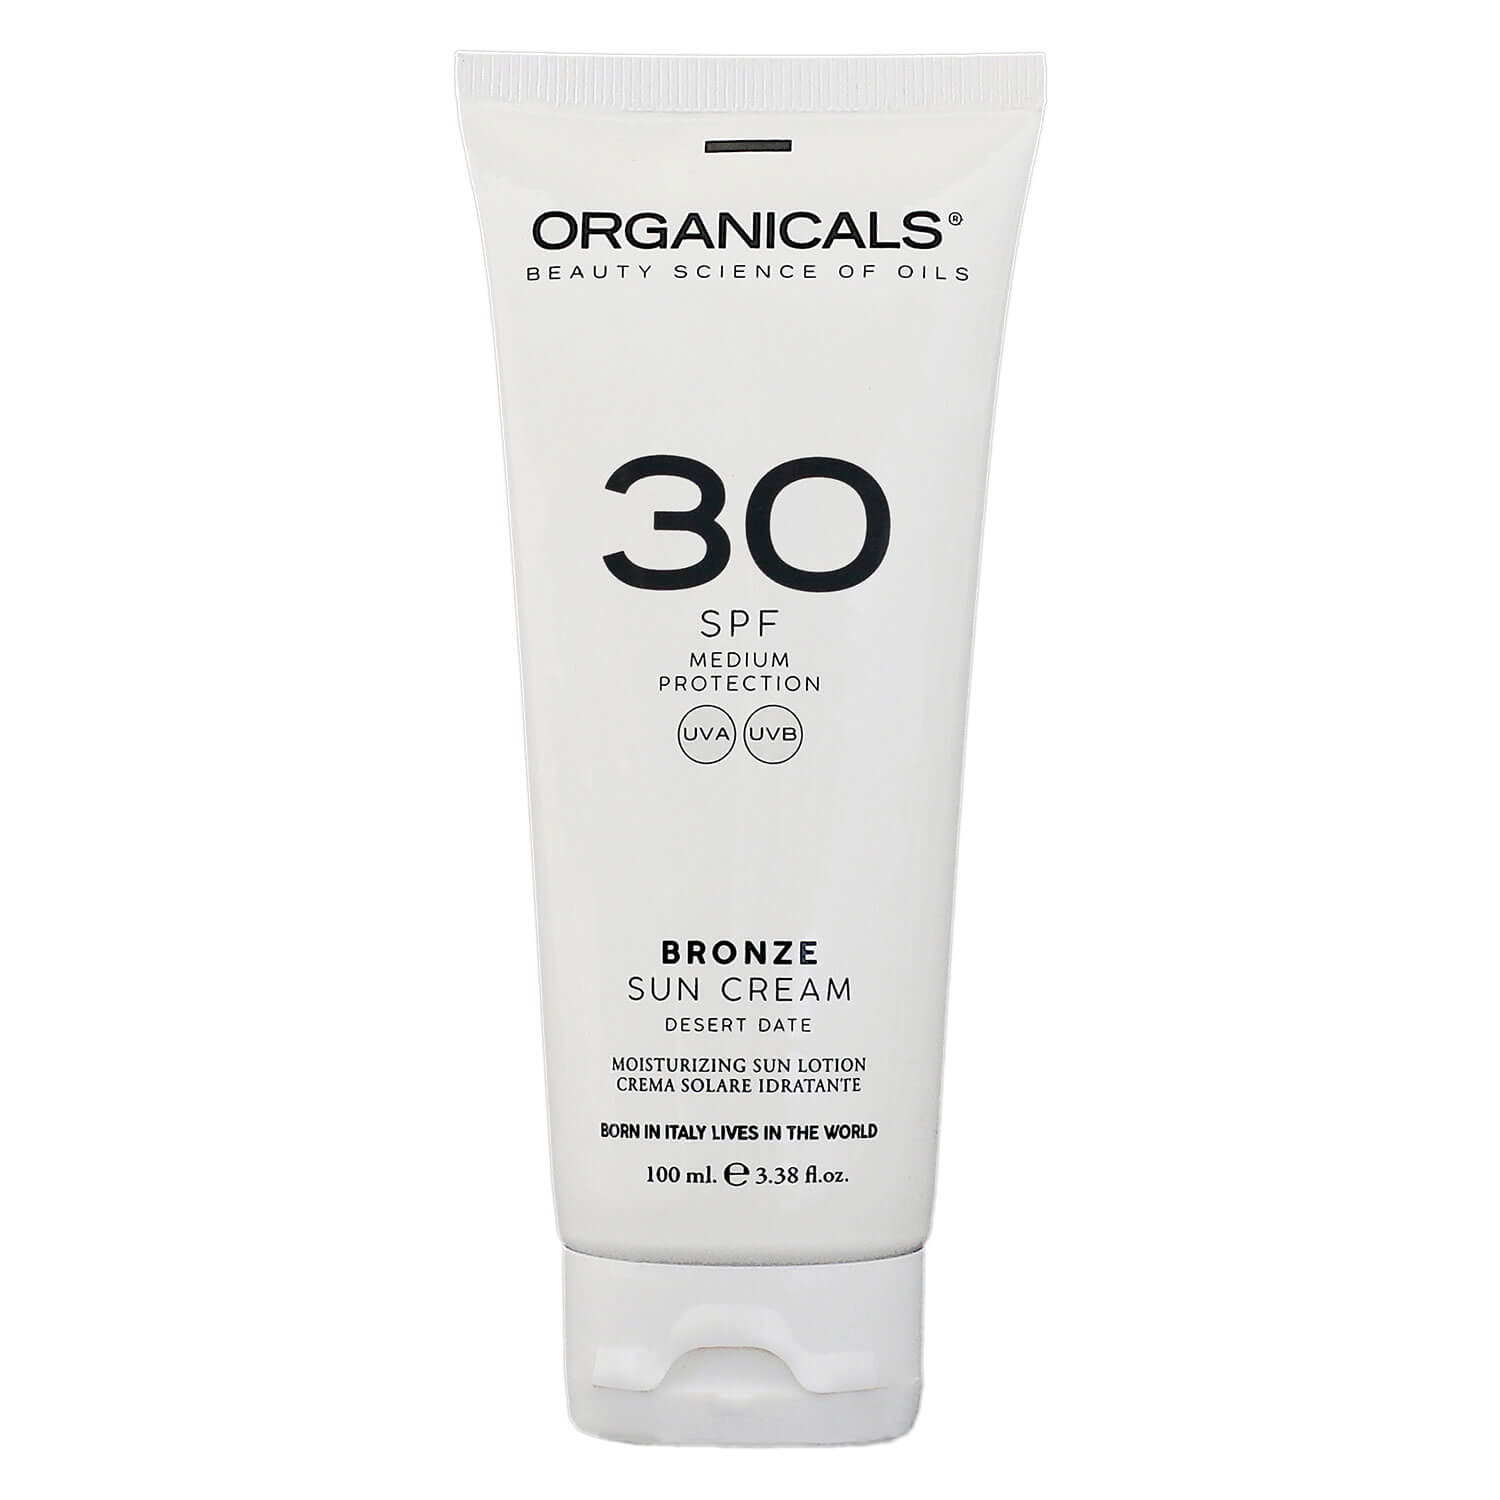 ORGANICALS - High Protection Bronze Sun Cream SPF 30